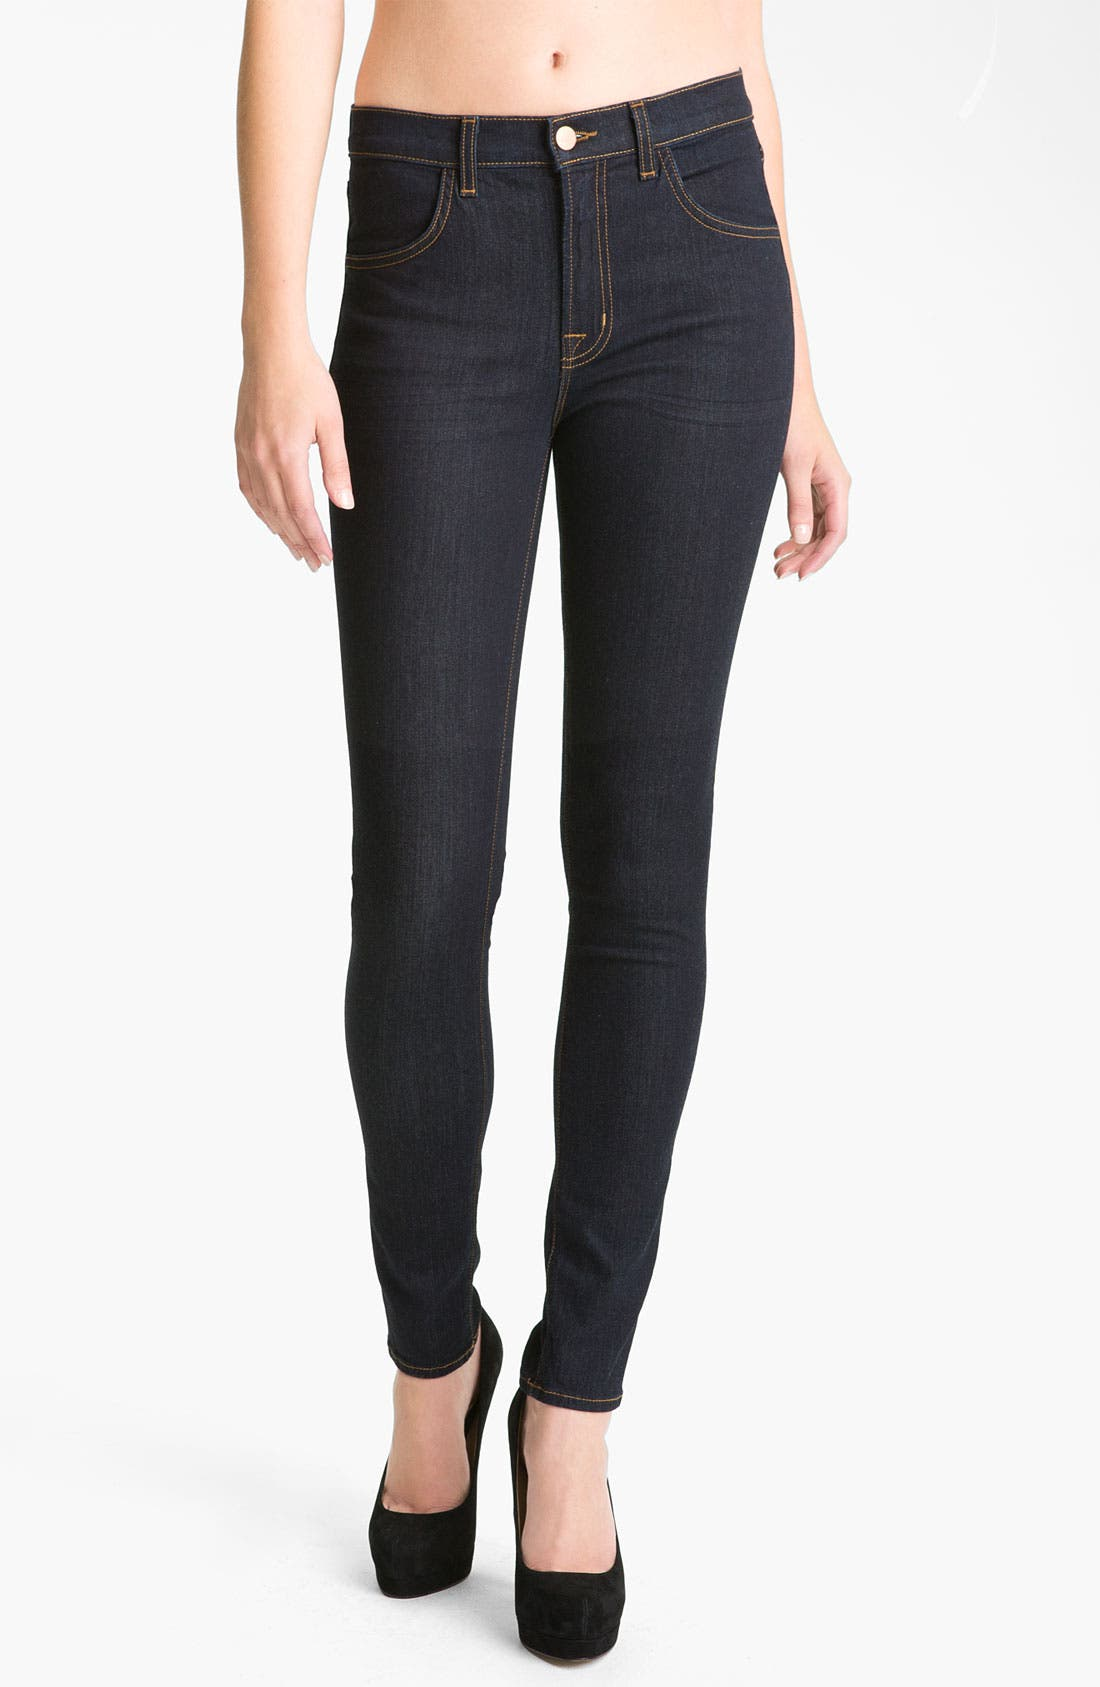 Alternate Image 1 Selected - J Brand '2311 Maria' High Rise Jeans (Starless)